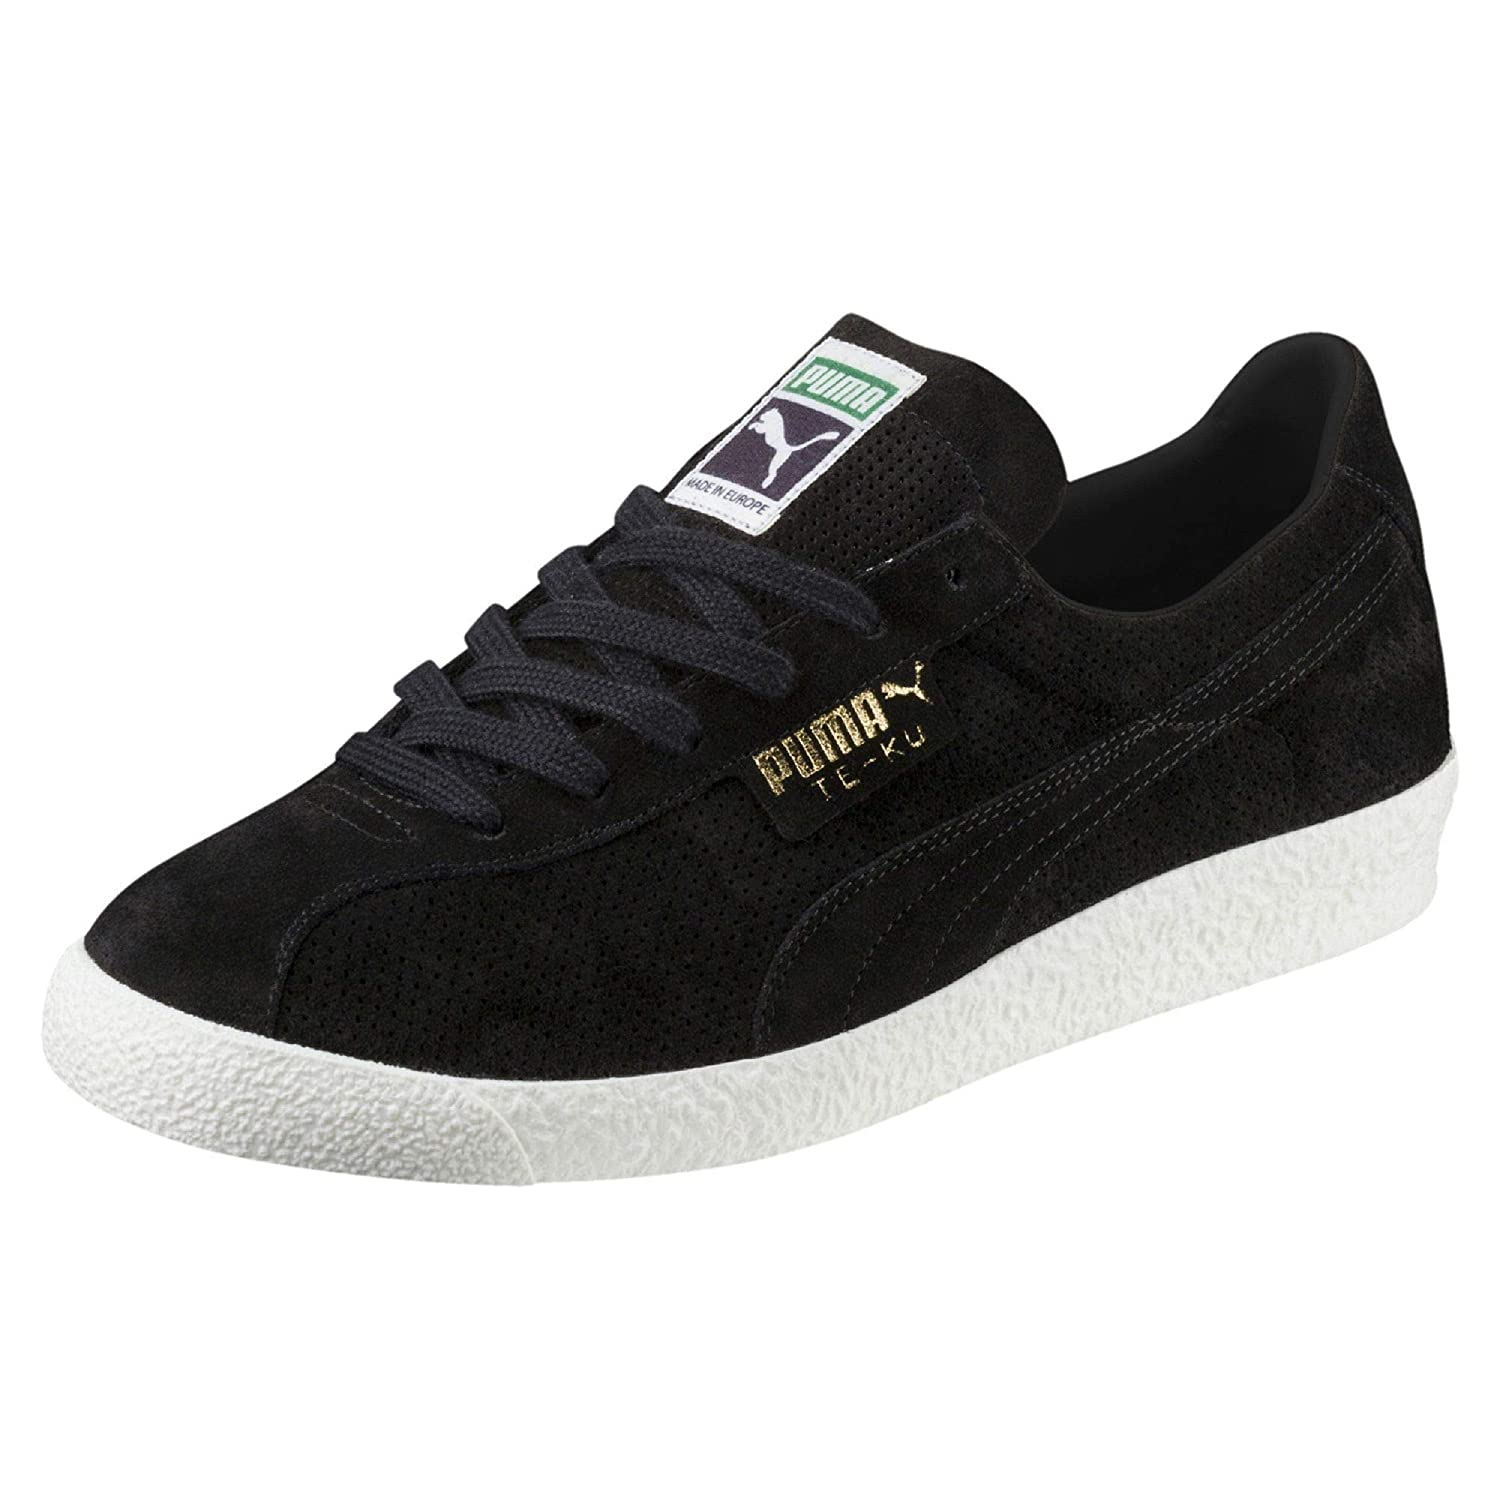 dd888530596 Puma Men s Te-Ku Summer Black and White Leather Sneakers-12 UK India (47  EU) (36542204)  Buy Online at Low Prices in India - Amazon.in